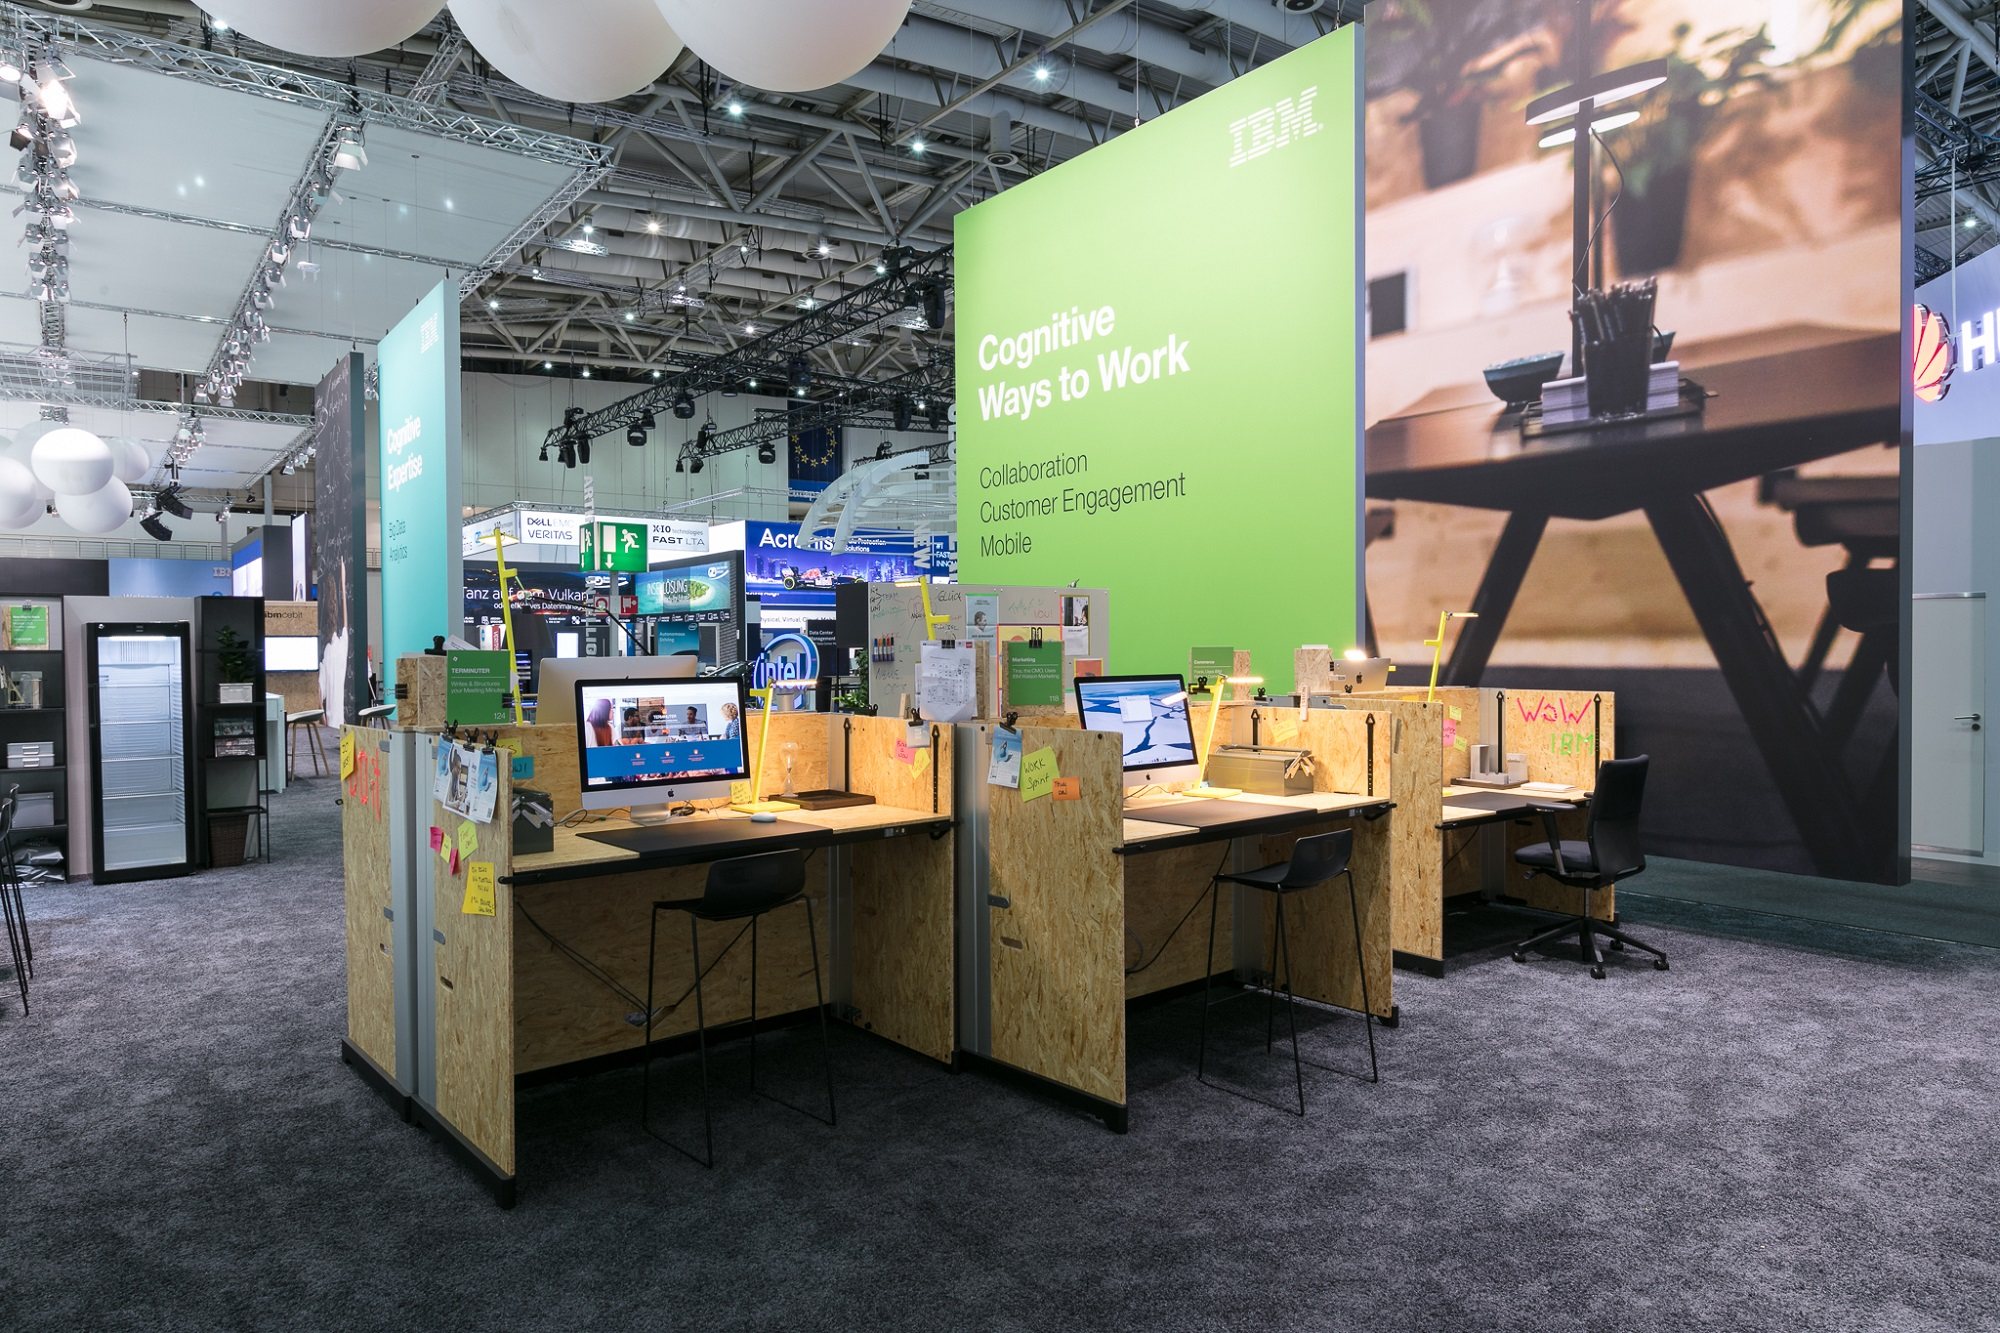 IBM-CeBIT-2017-Architektur-7525.jpg